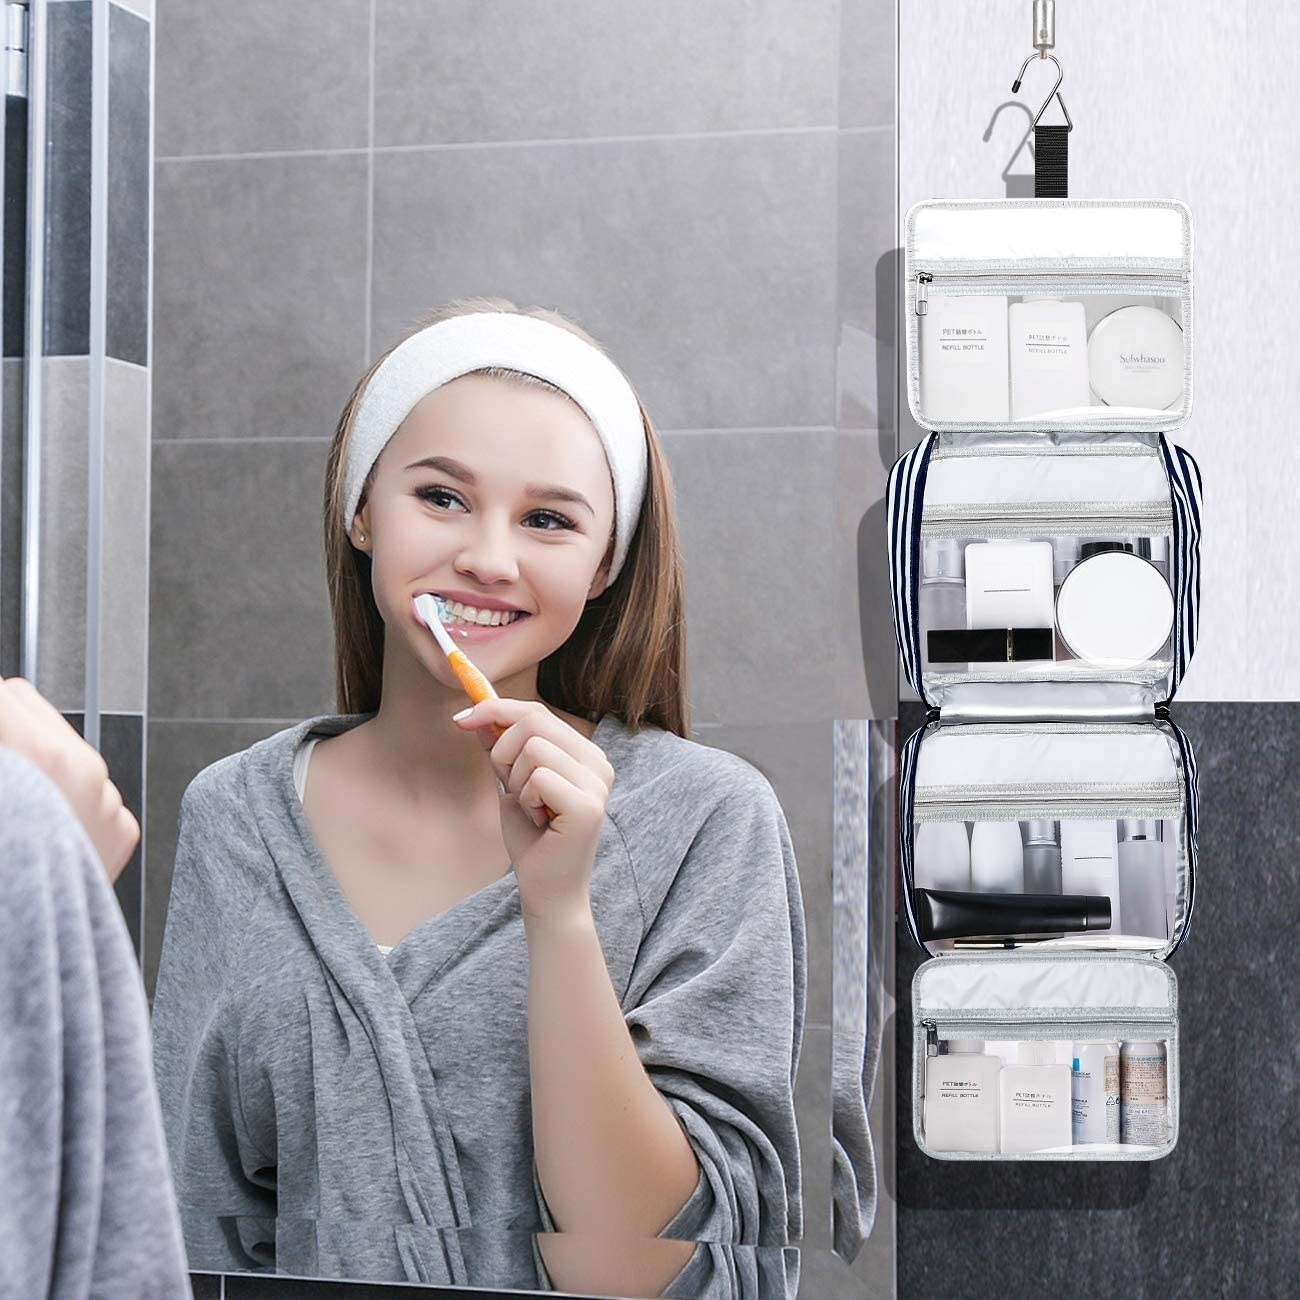 person brushing their teeth in the mirror with the hanging toiletry bag in the background